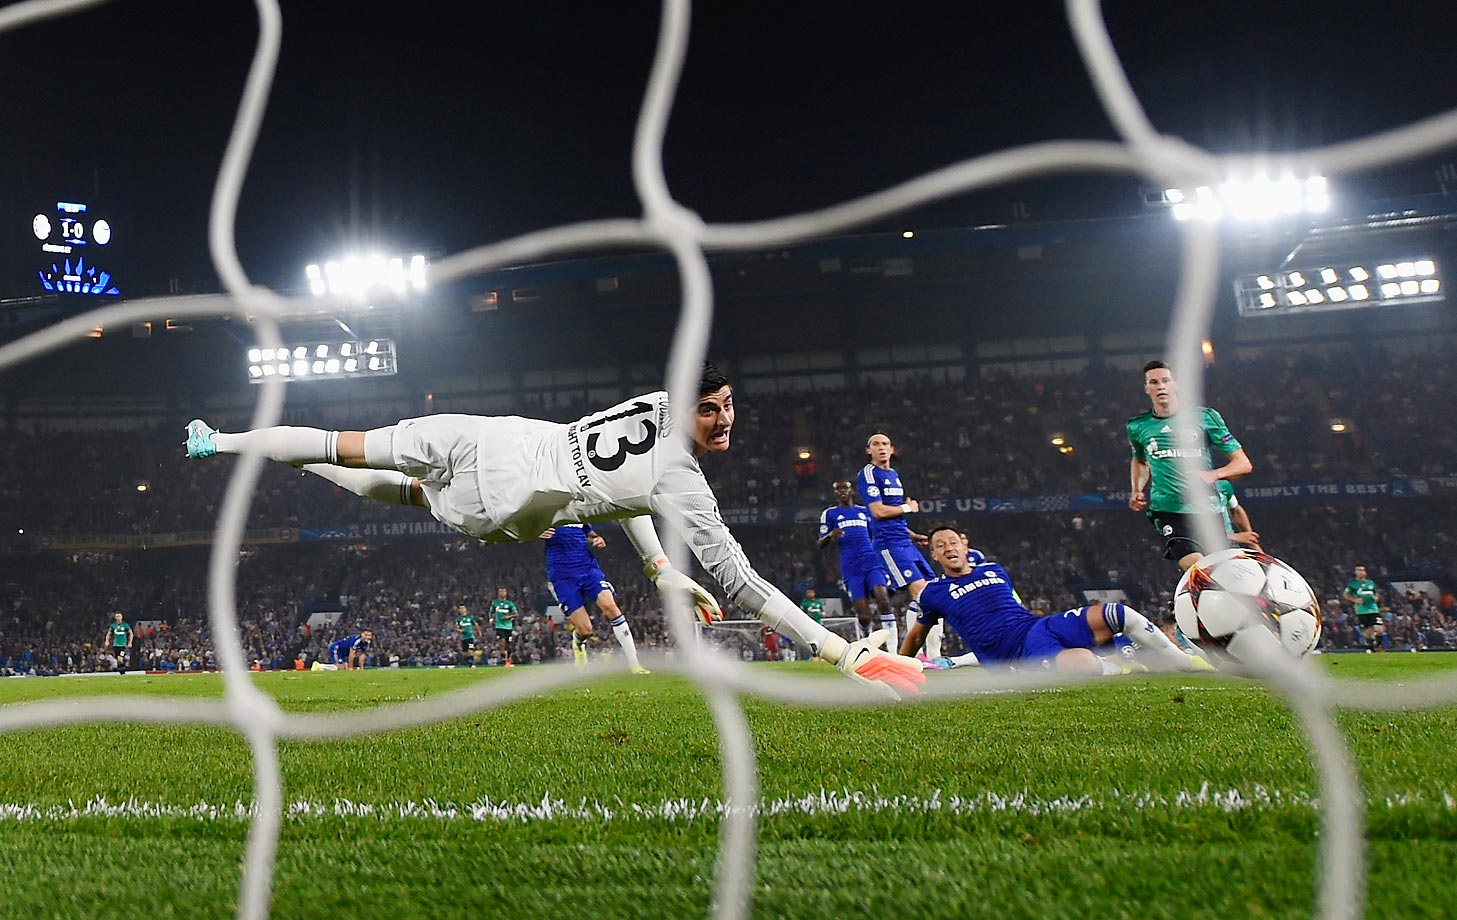 Thibaut Courtois of Chelsea dives in vain as Klaas-Jan Huntelaar of Schalke scores a goal during the UEFA Champions League Group G match.